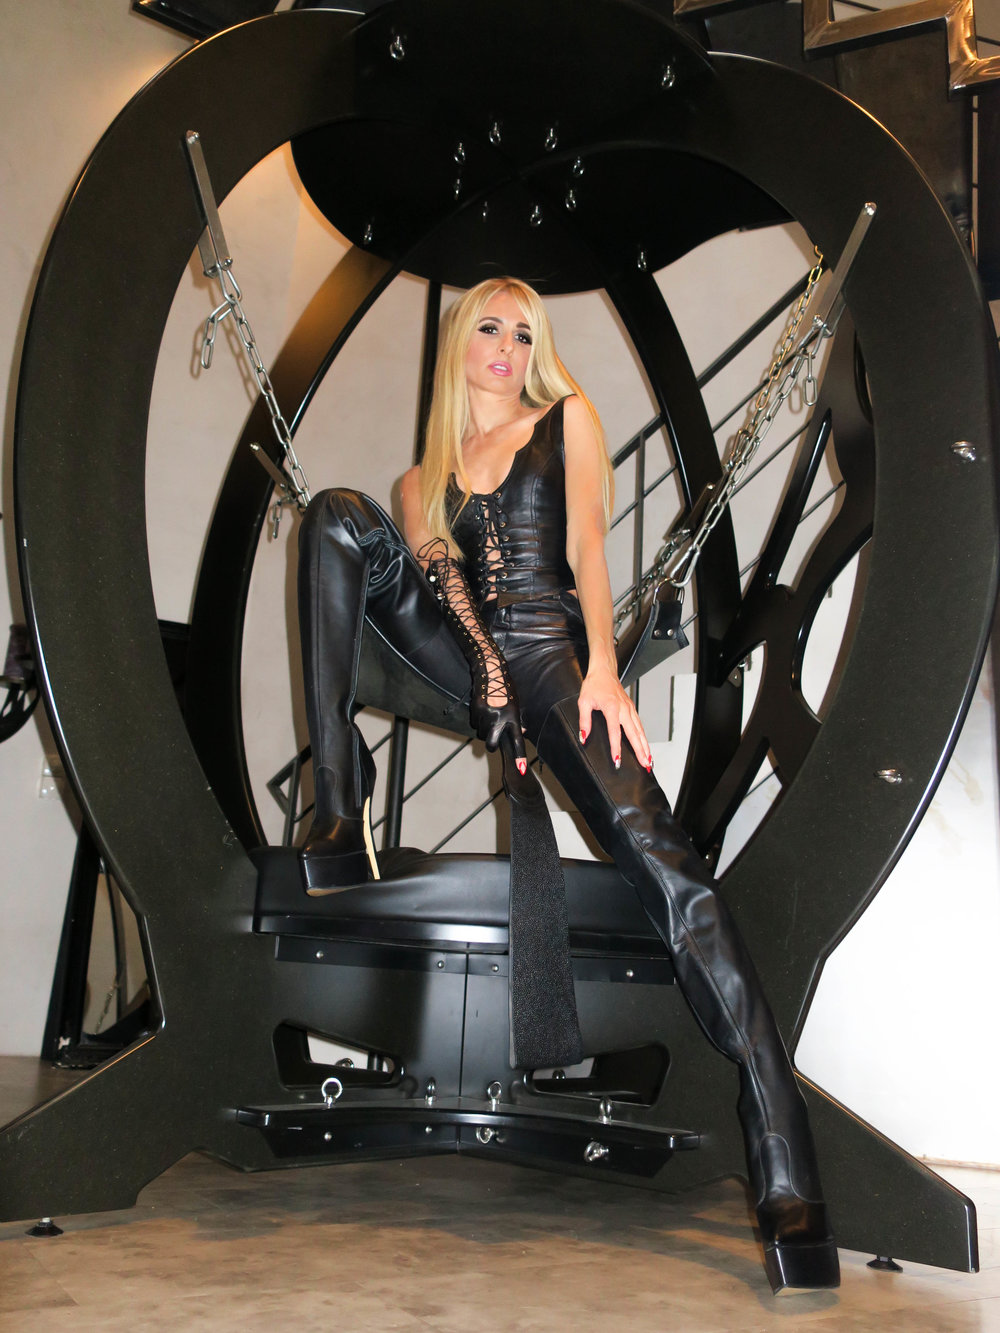 Like BDSM, travel is liberating and transcendent. Fetish and domination are always part of My journey.   -